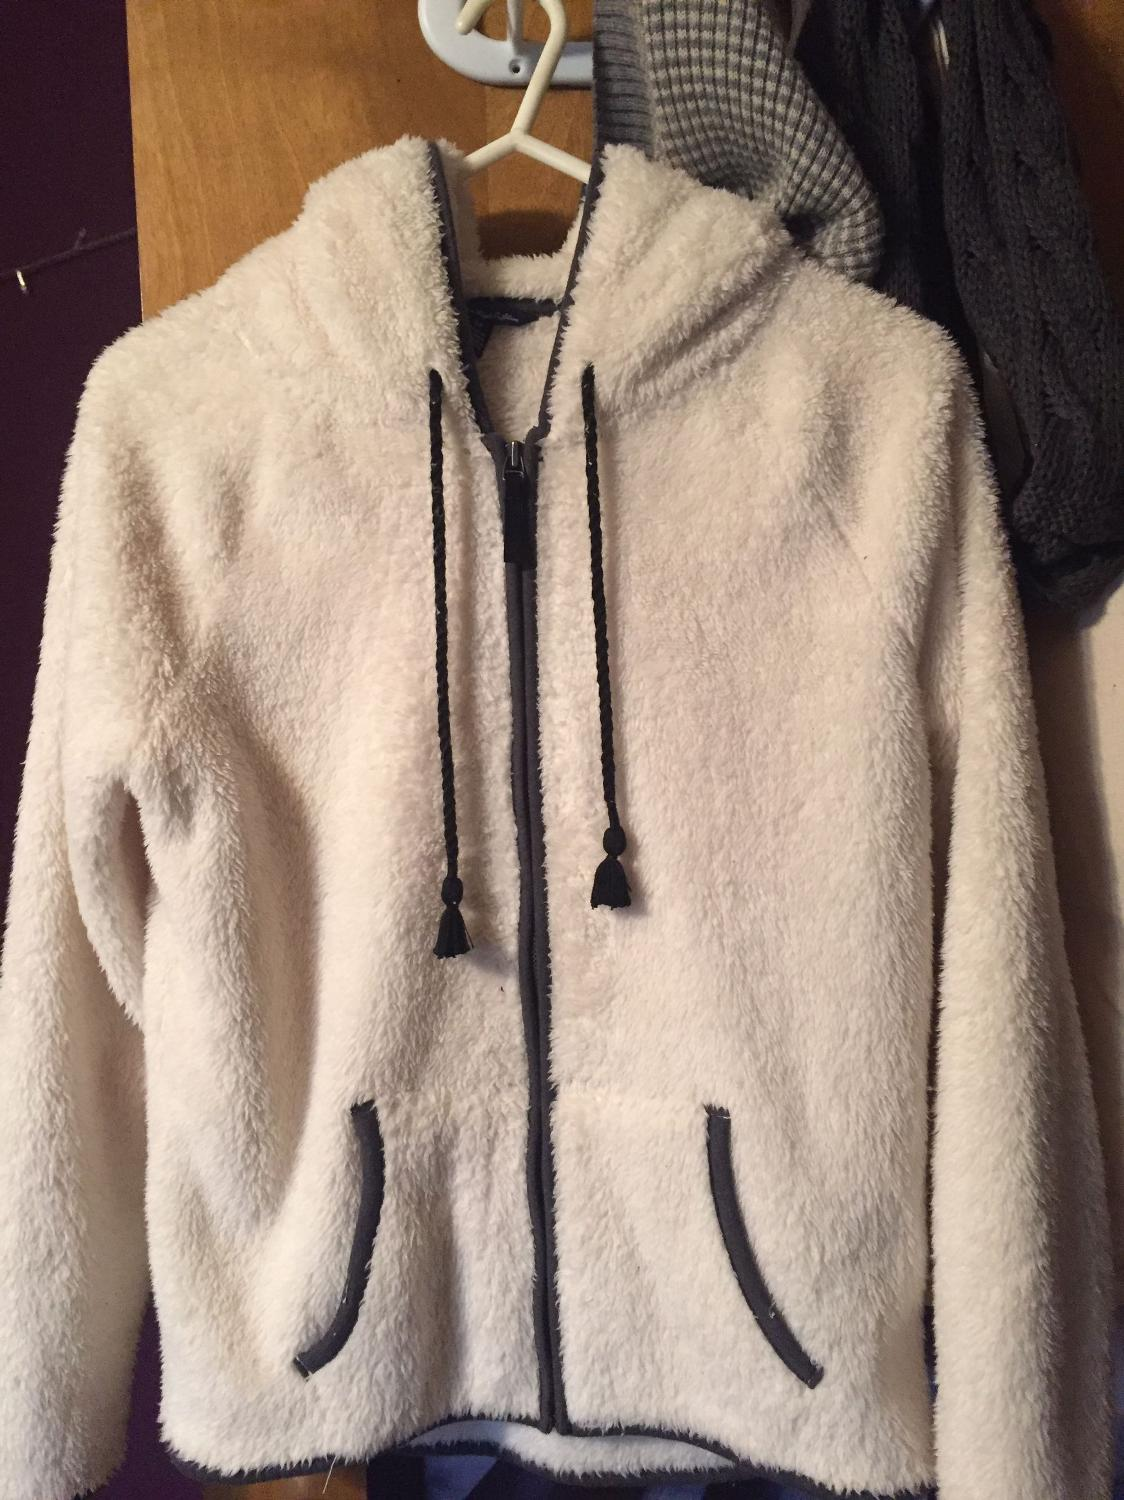 Best Aeo Fuzzy Zip Up For Sale In Minot North Dakota For